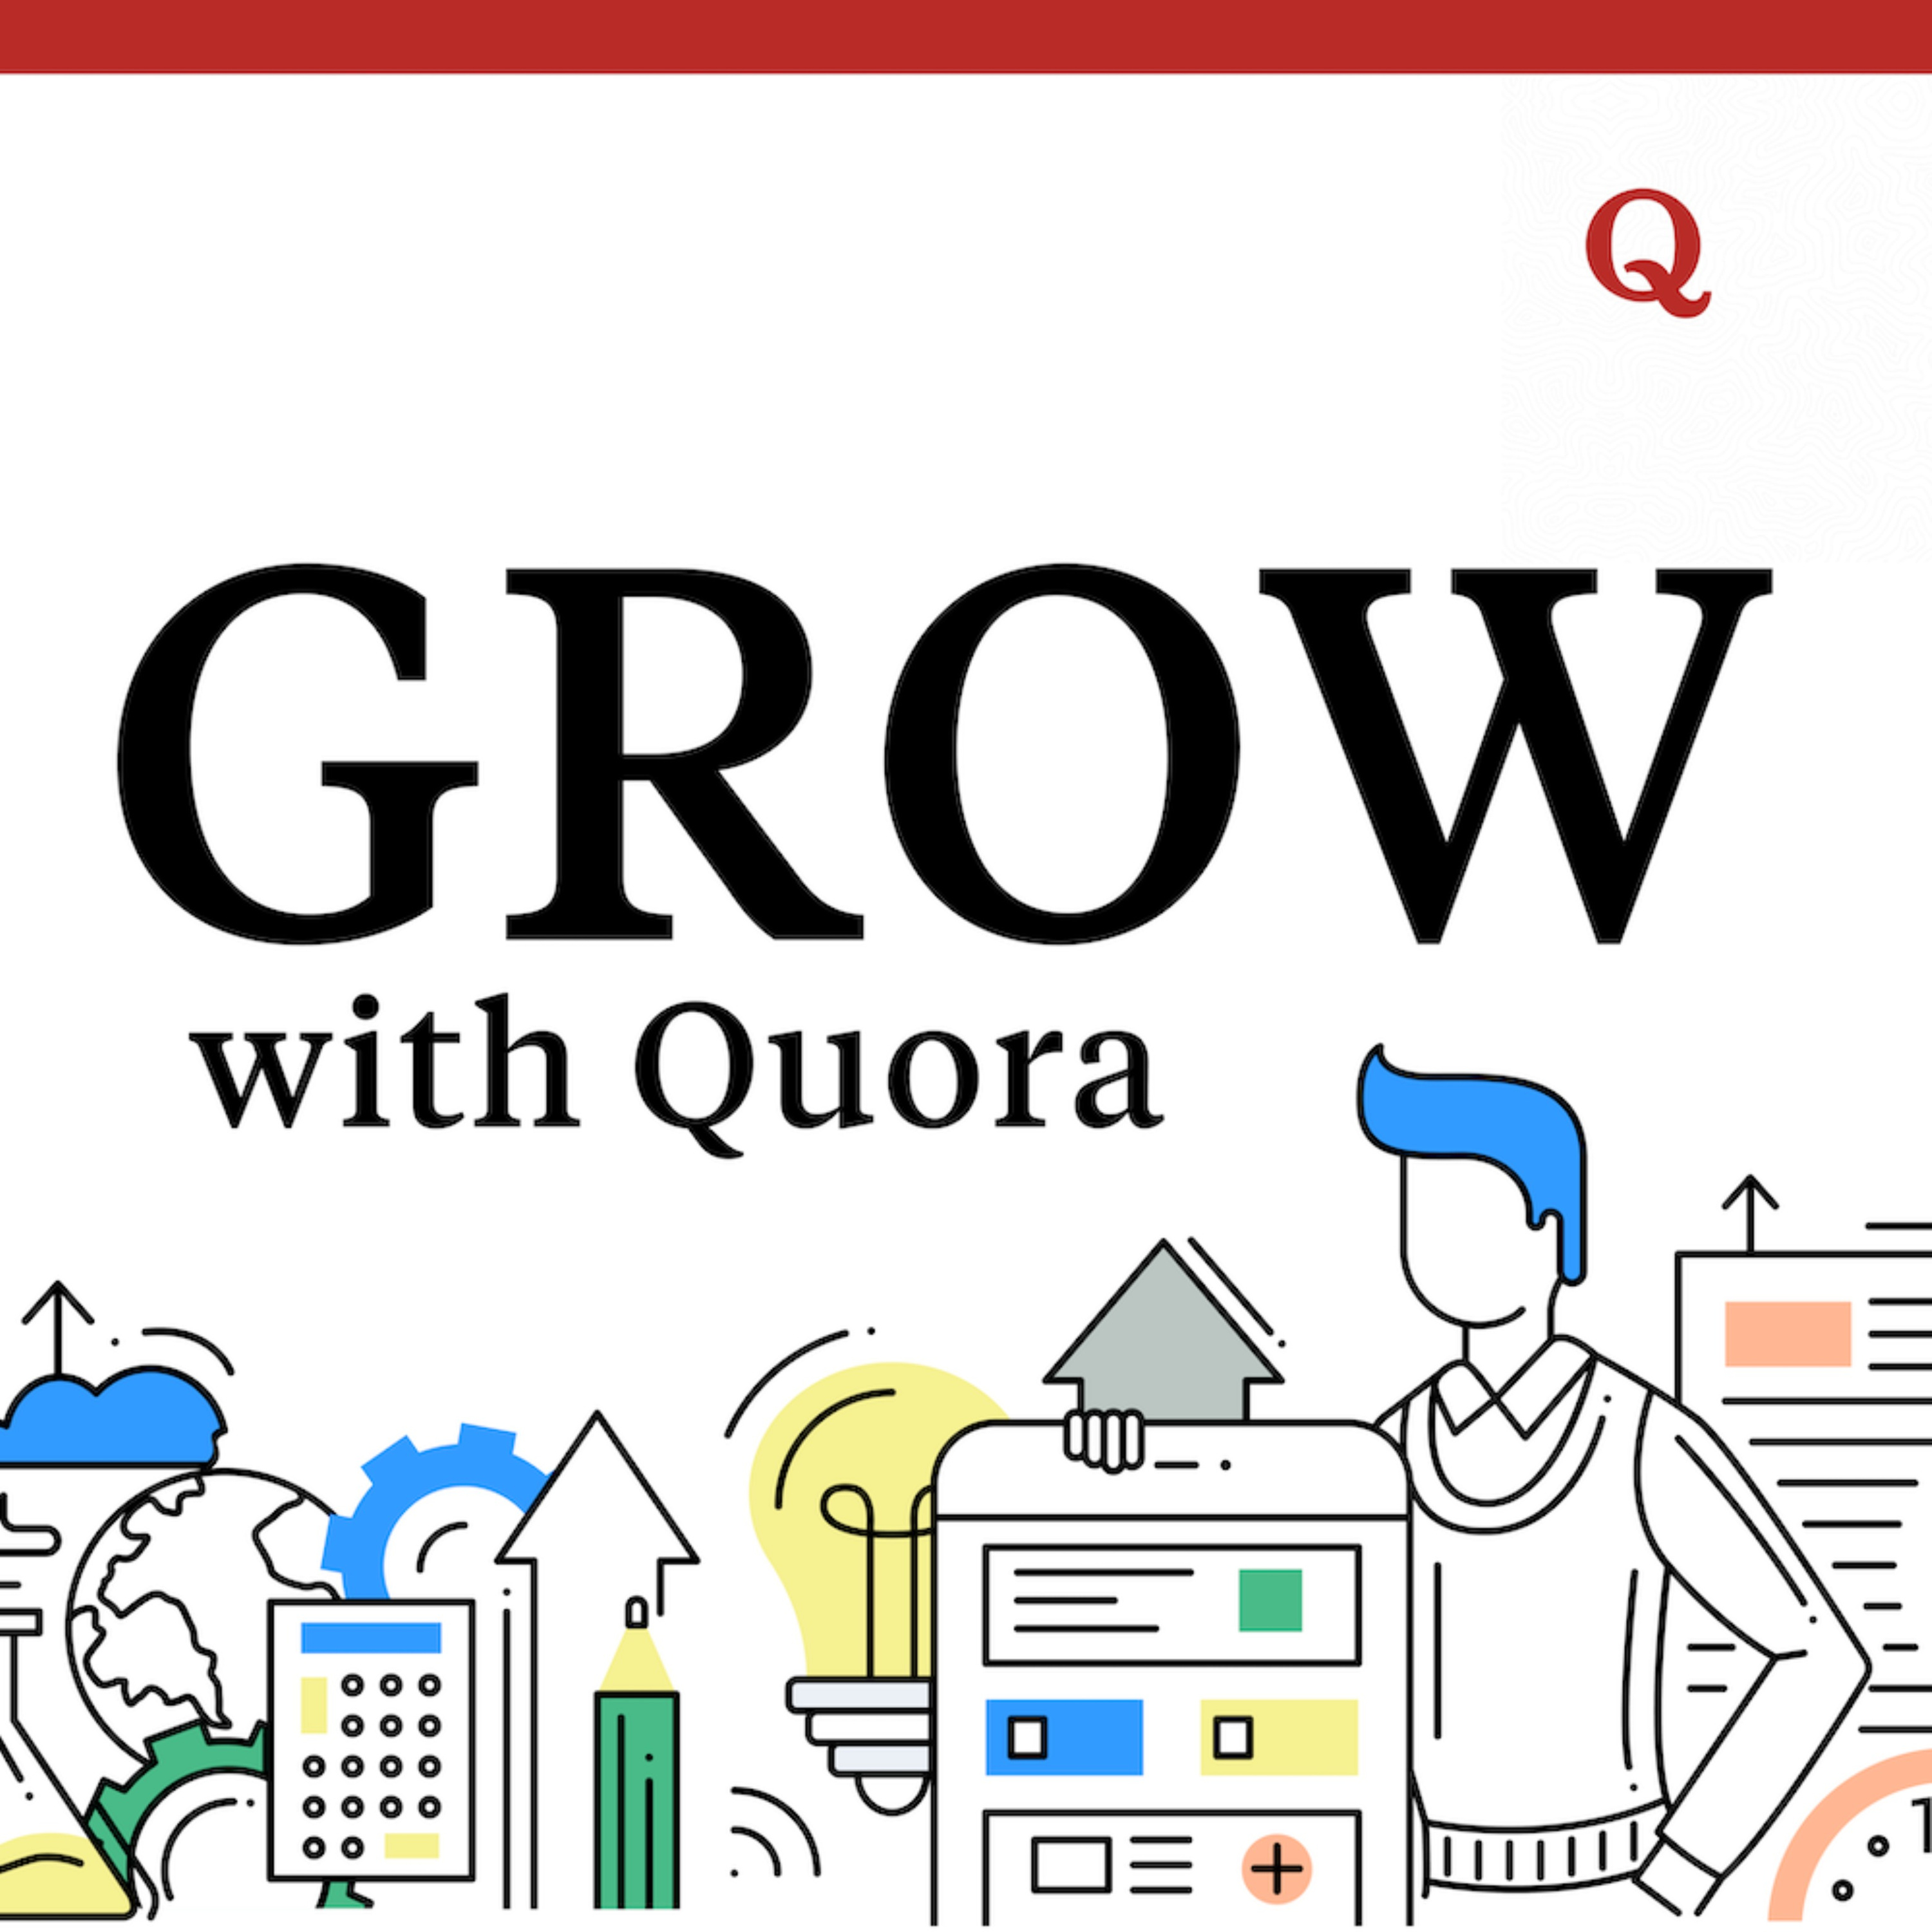 Grow with Quora Podcast - Listen, Reviews, Charts - Chartable